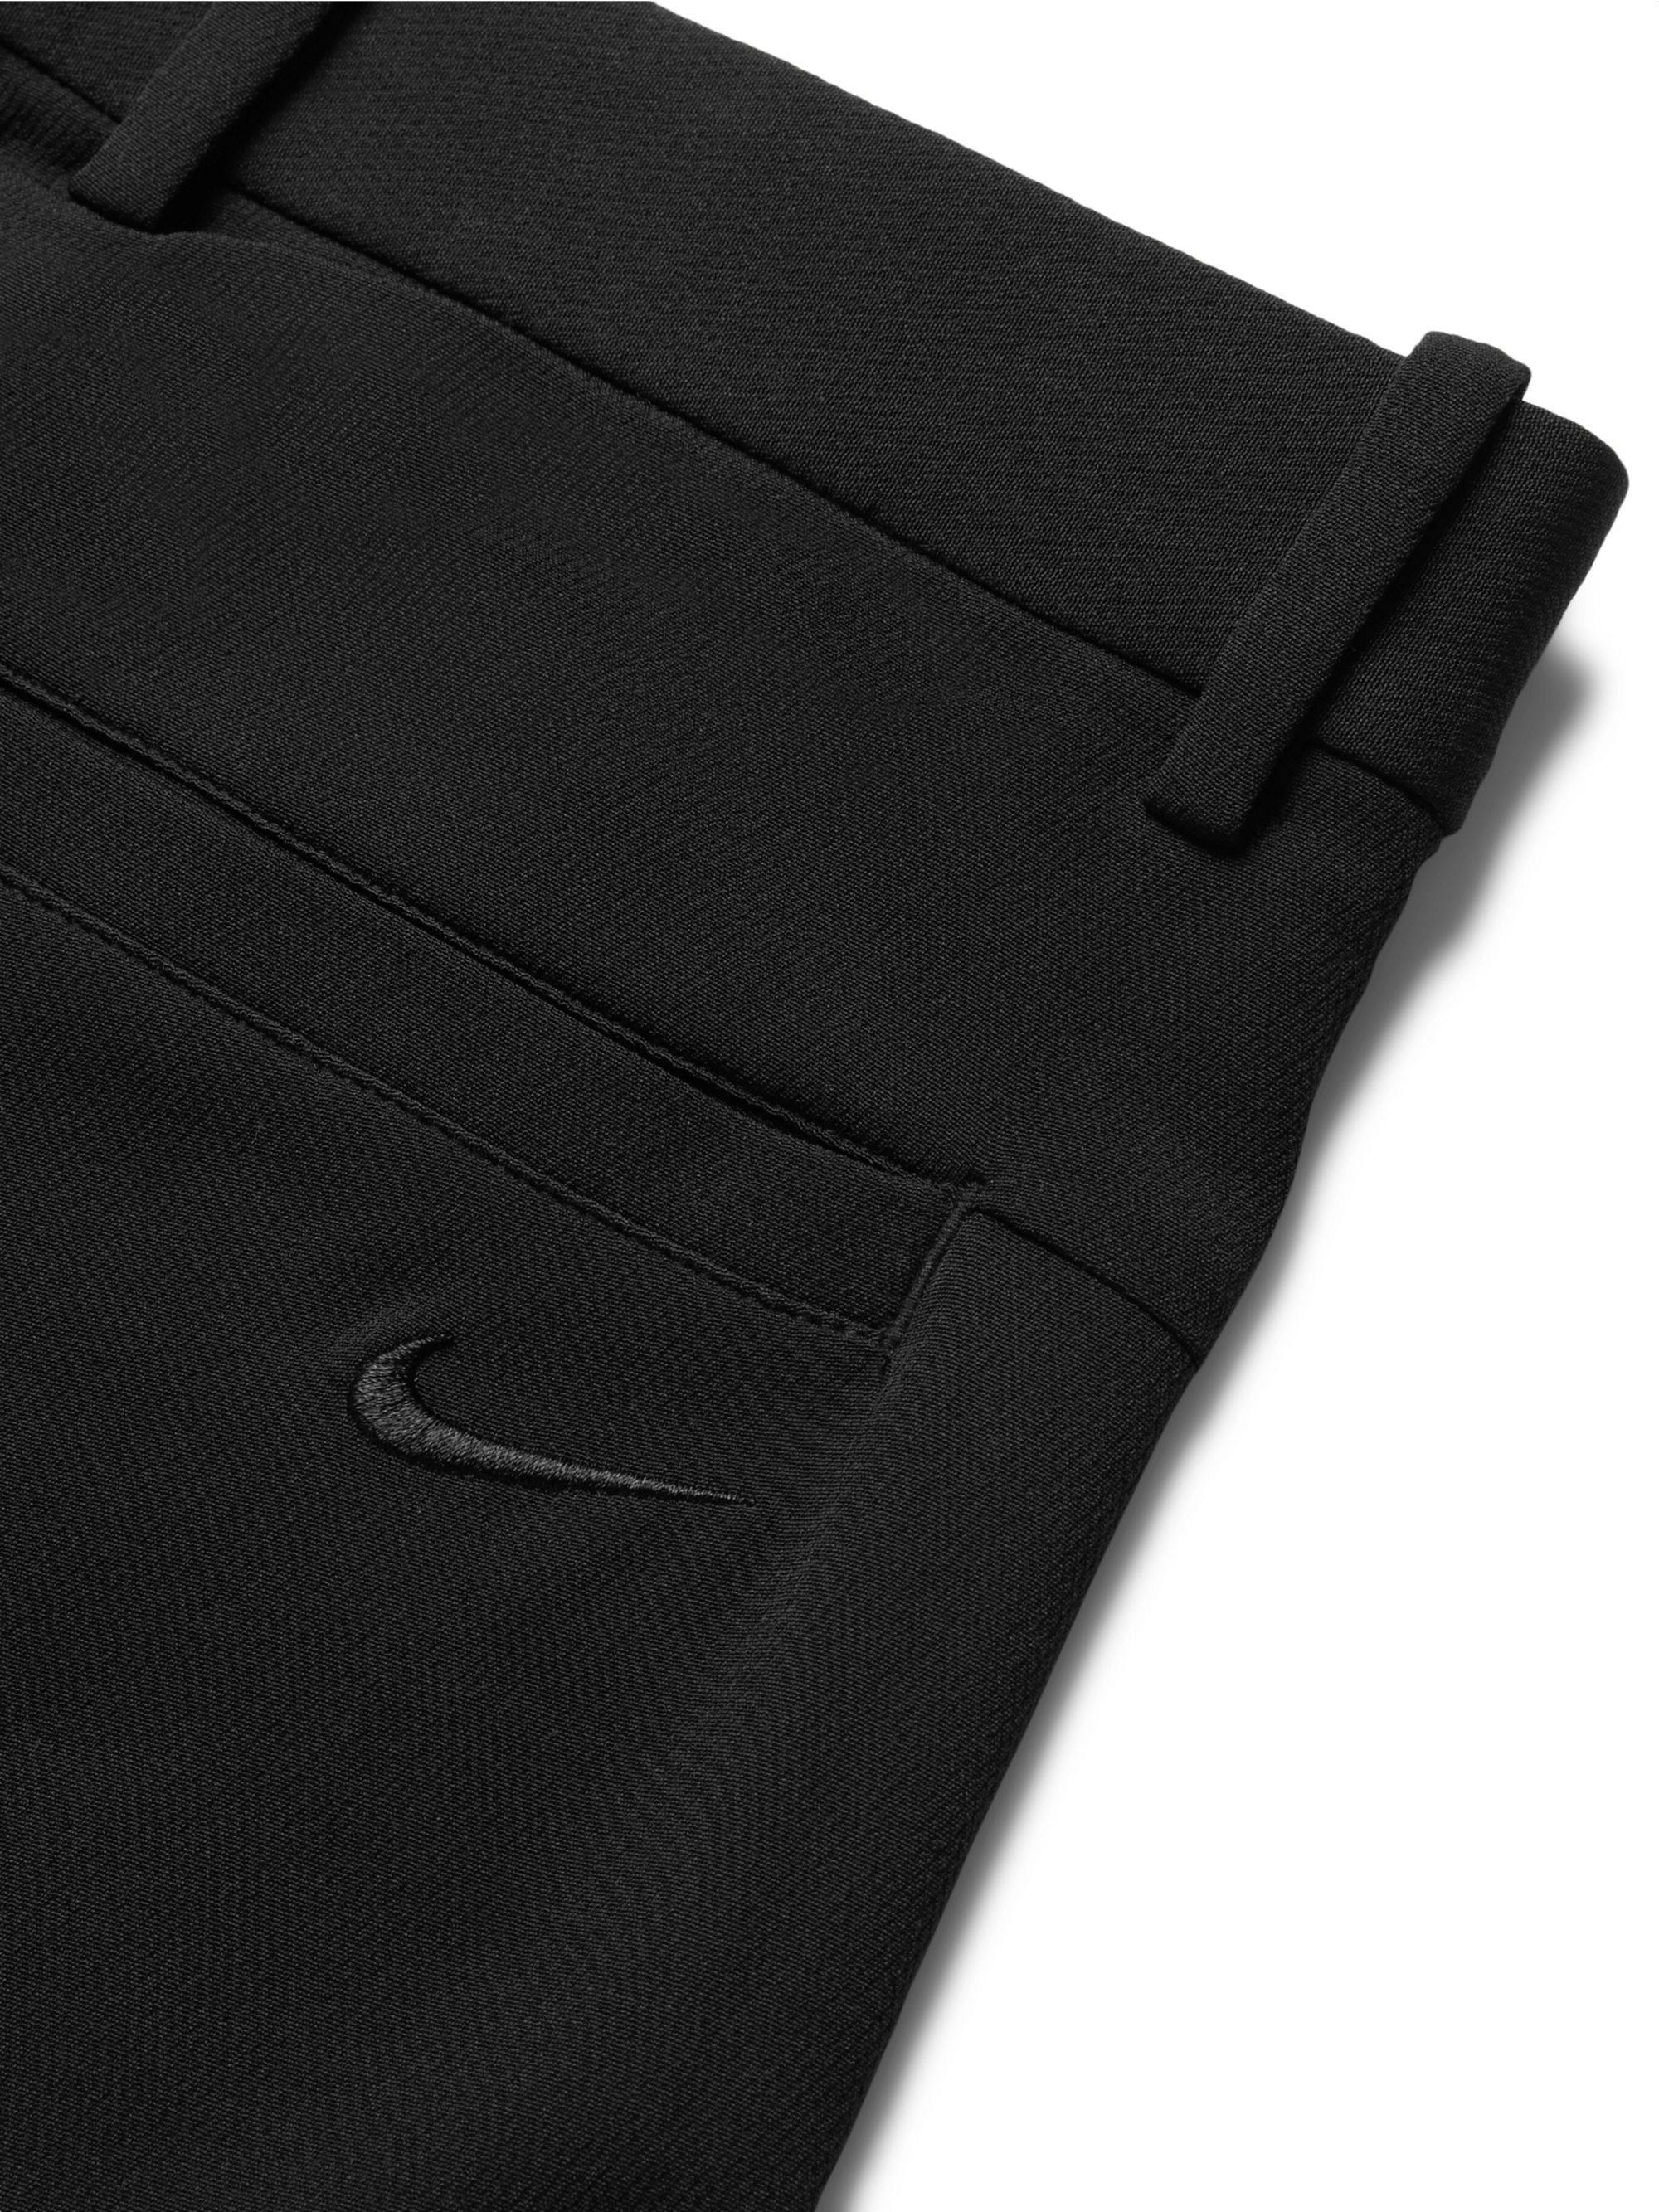 Nike Golf Vapor Slim-Fit Flex Dri-FIT Golf Trousers